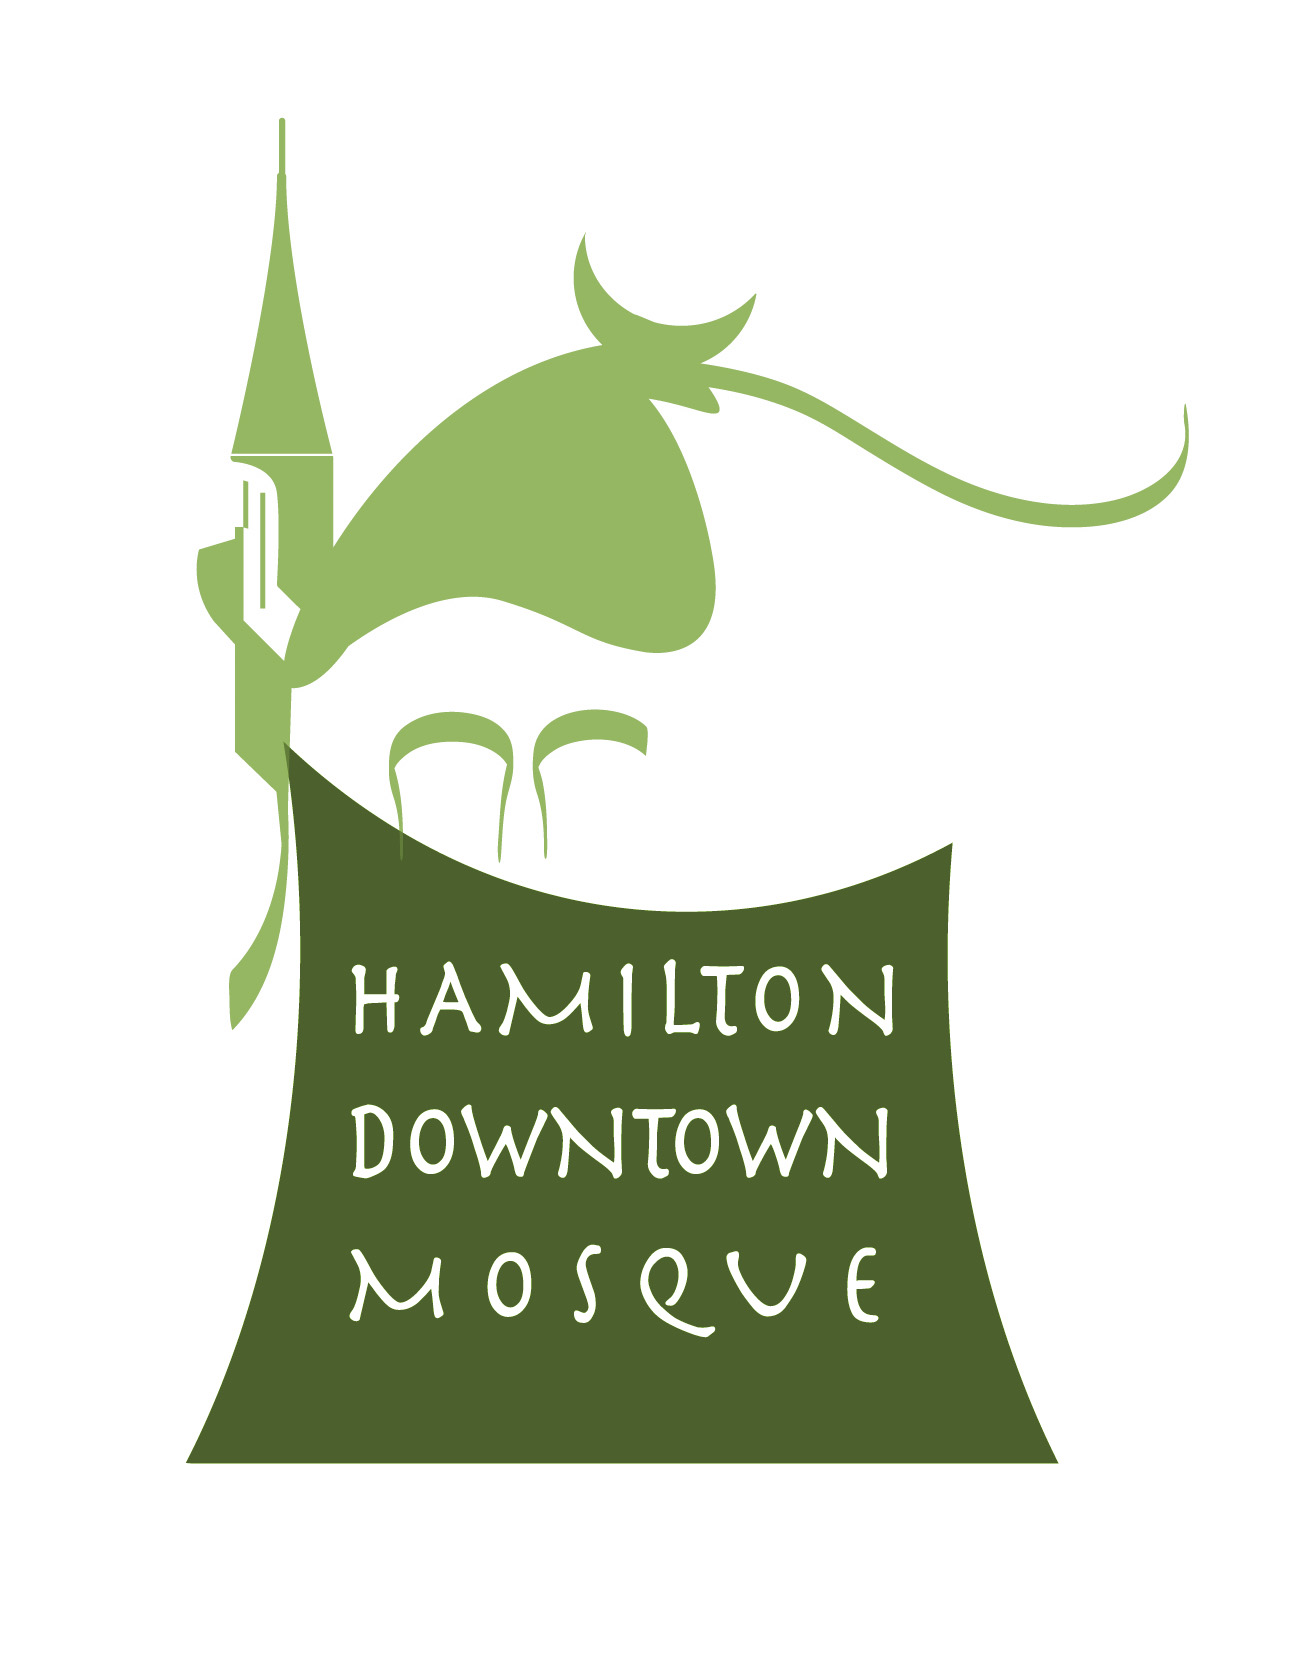 Hamilton Downtown Mosque logo